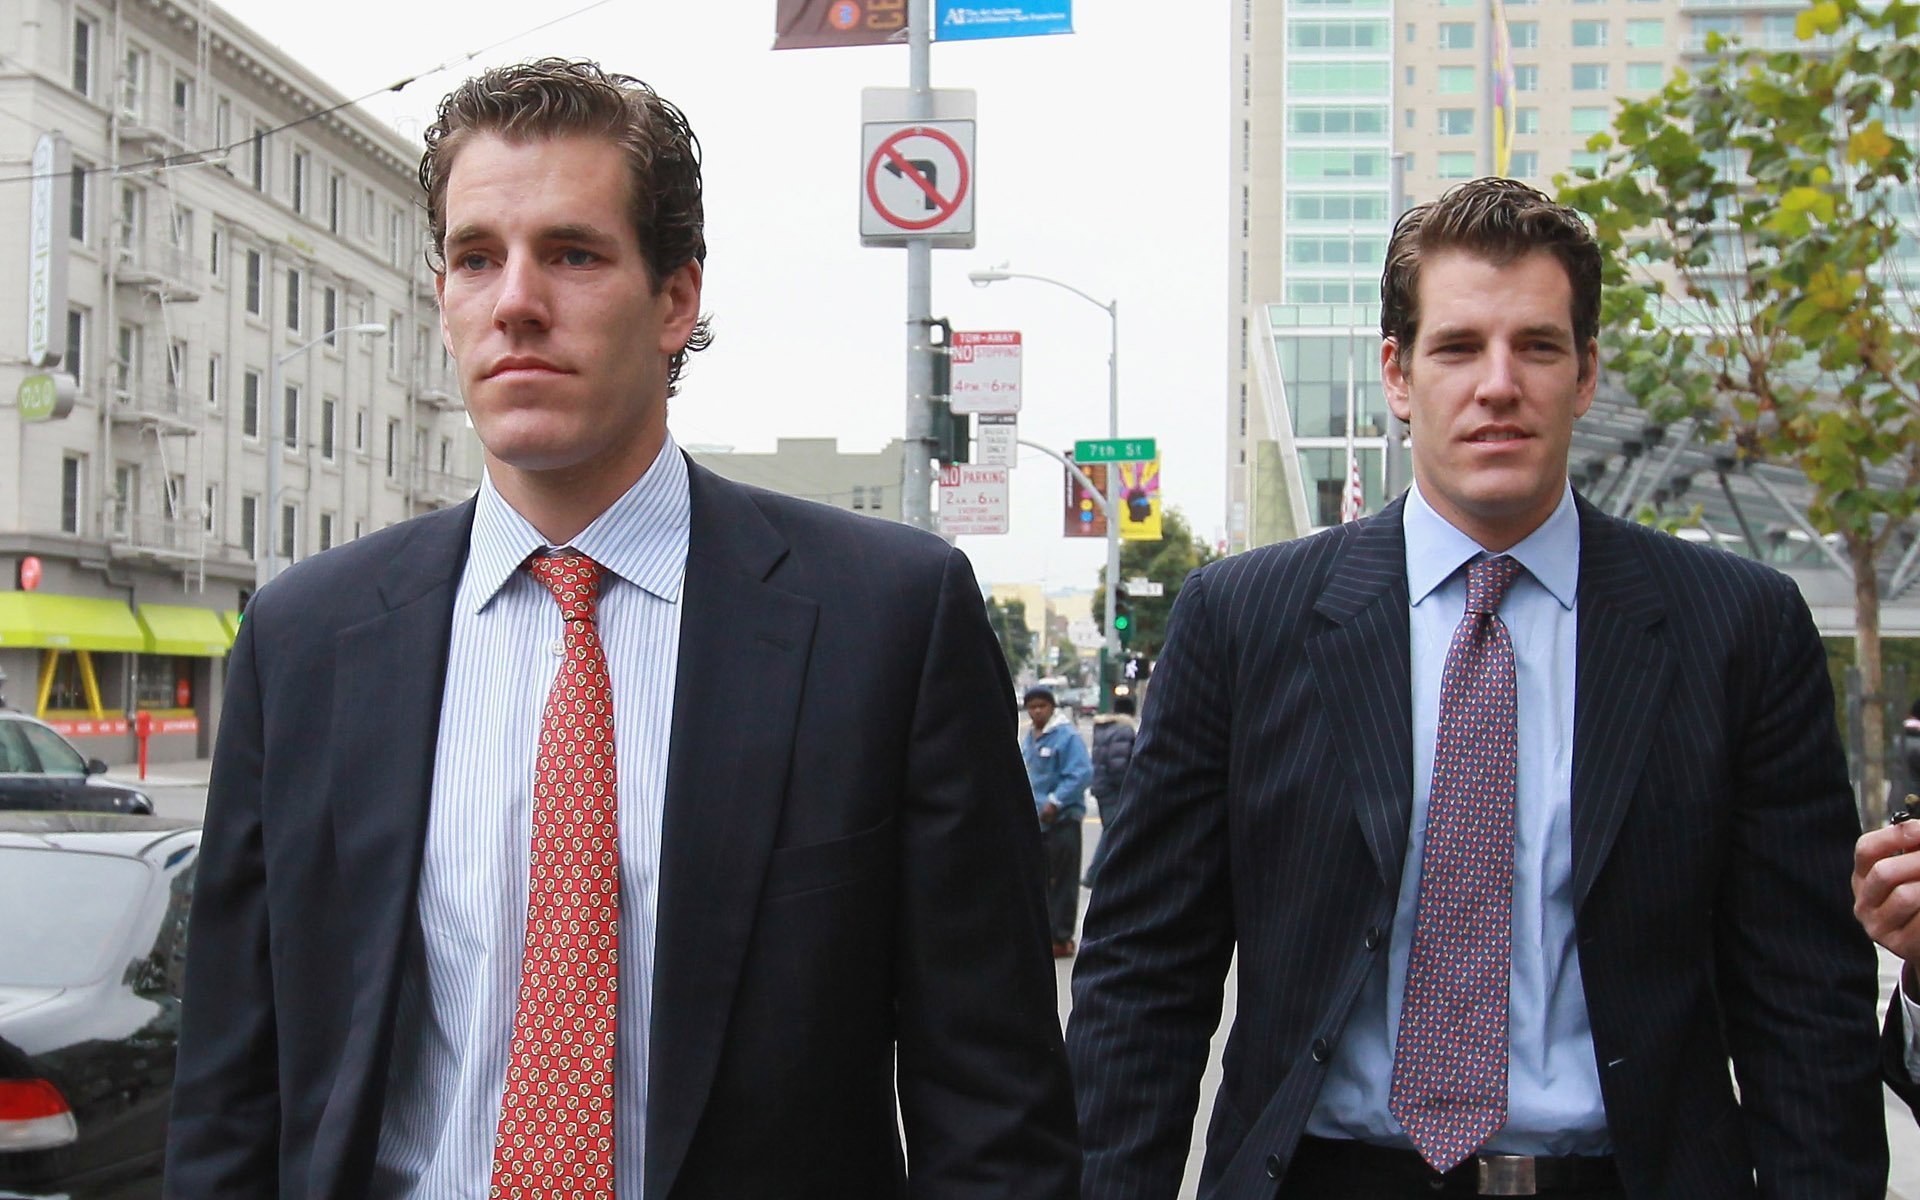 SEC Rejects Winklevoss Bitcoin ETF Proposal